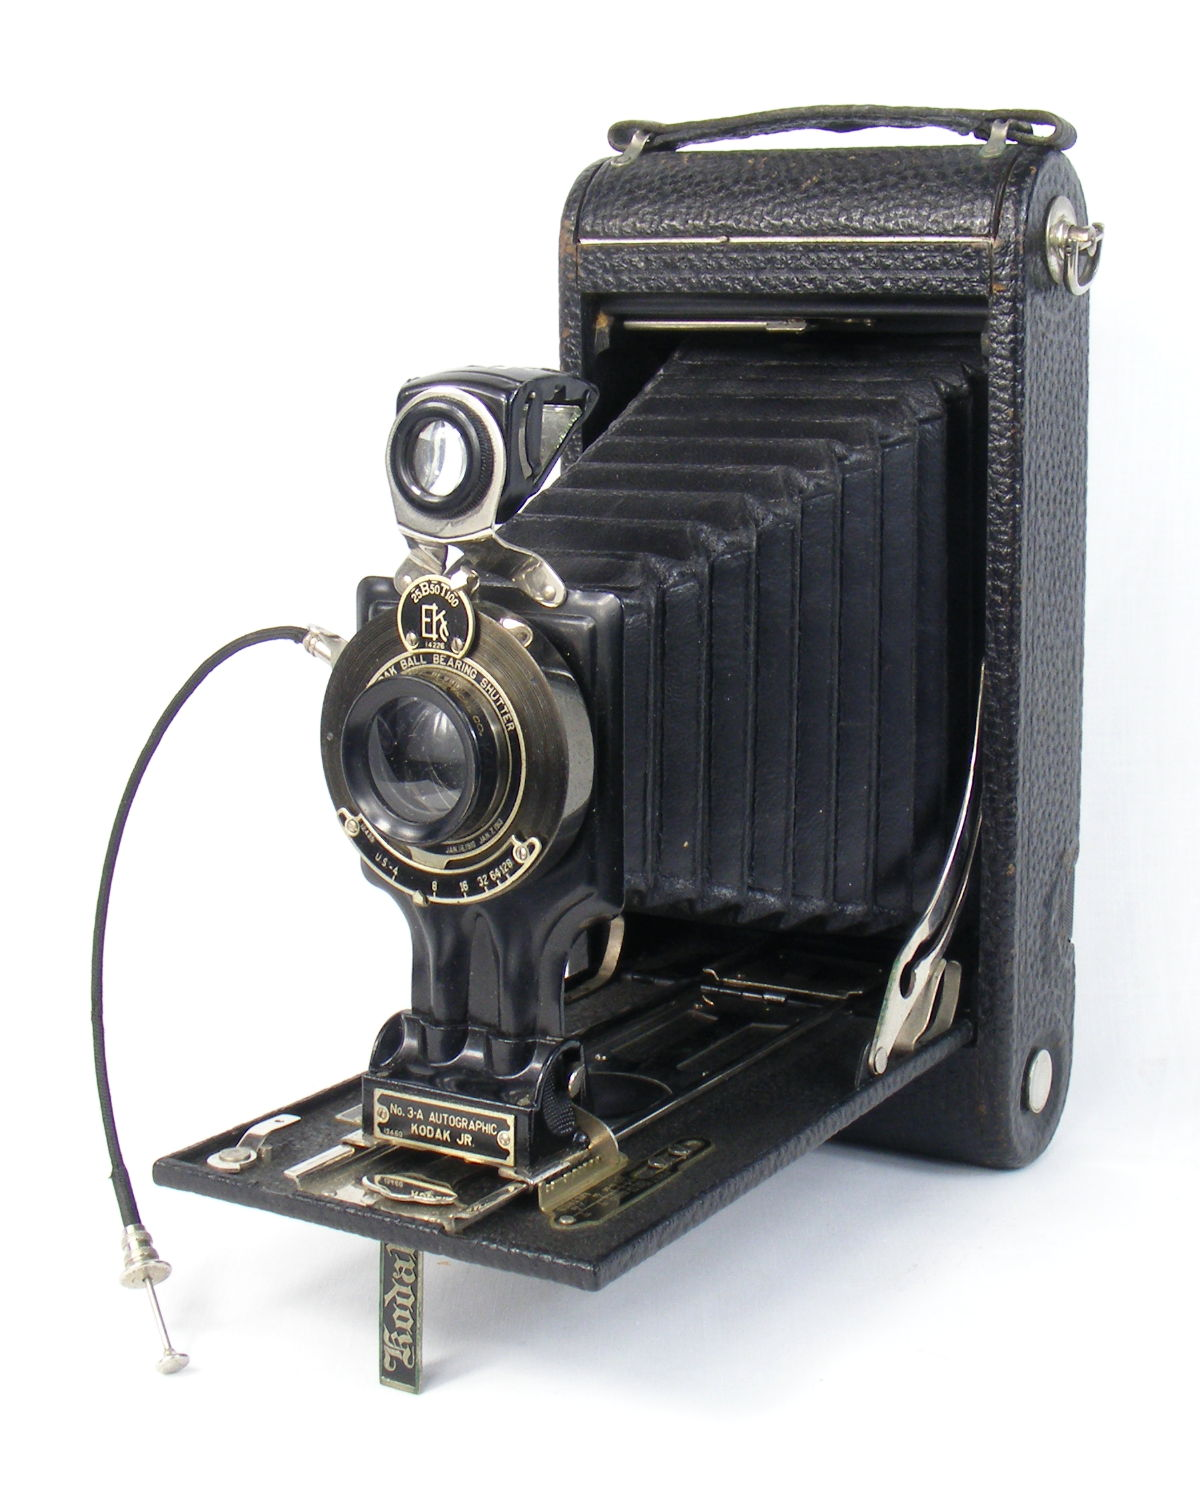 Image of No 3A Autographic Kodak Junior camera